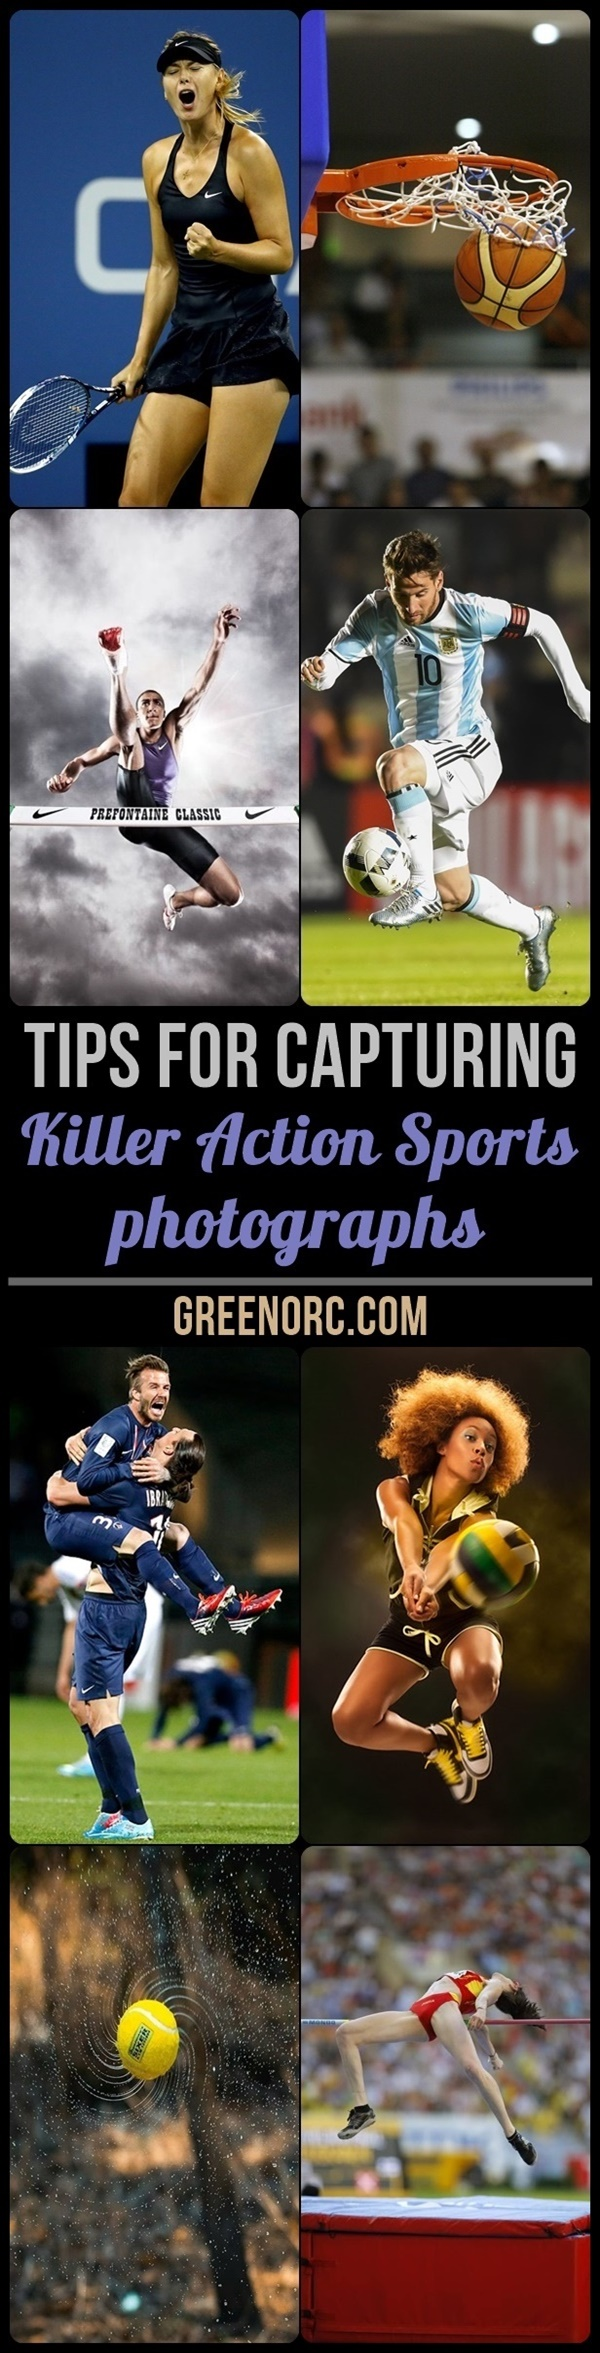 Tips For Capturing Killer Action Sports photographs